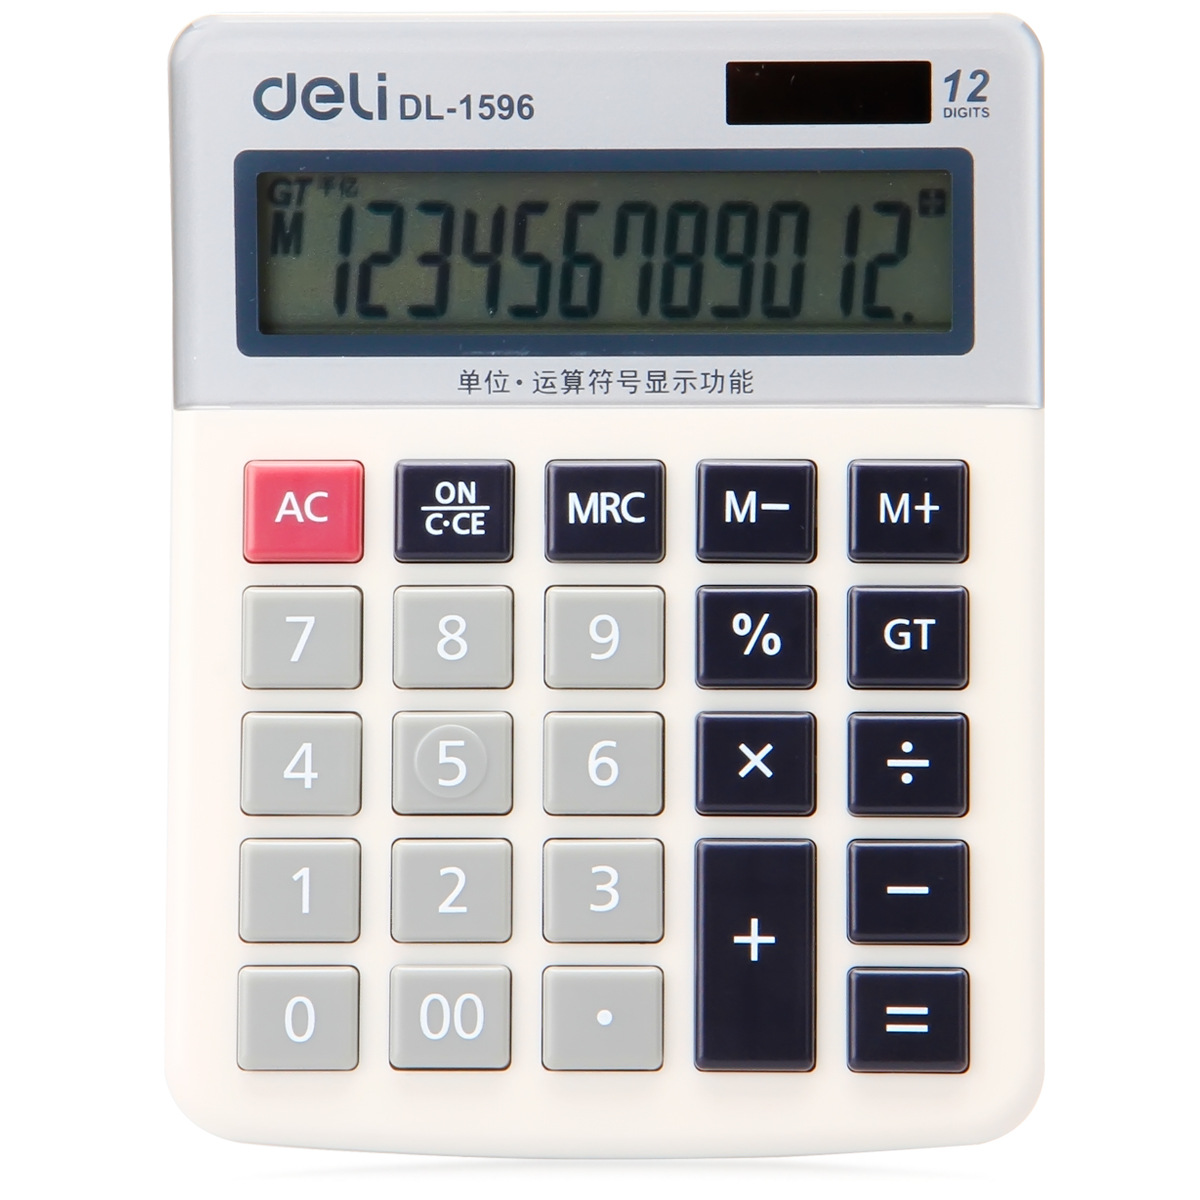 Deli Brand Solar Calculator Office Finance Accounting Large Computer Screen 12 Digit White 40D1596 management accounting